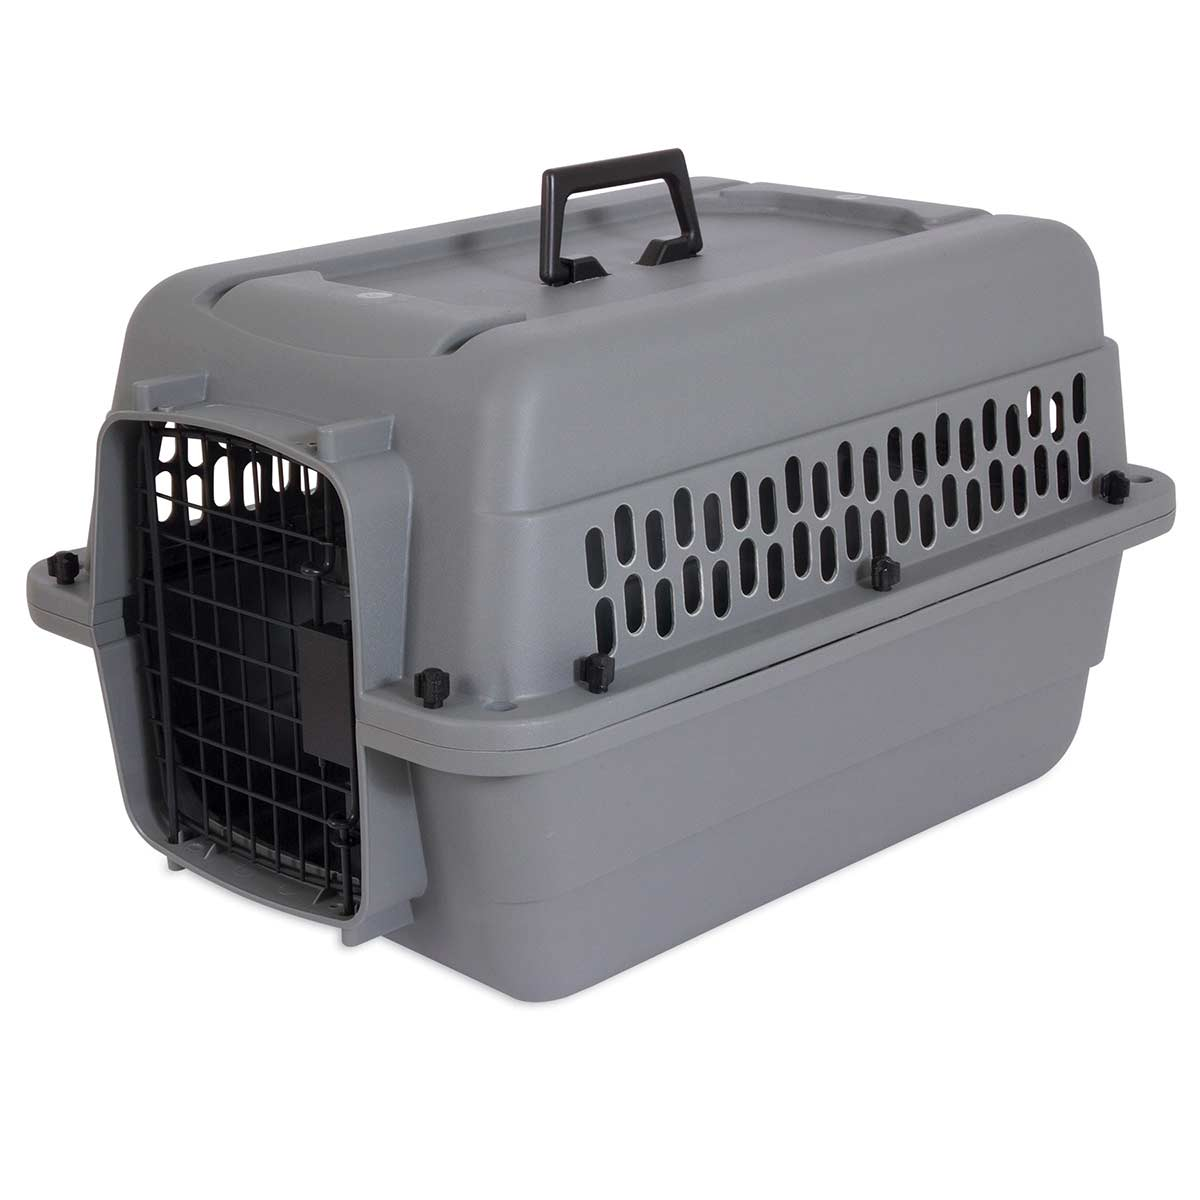 Aspen Pet Traditional Kennel for Traveling with Pets - 24 inches